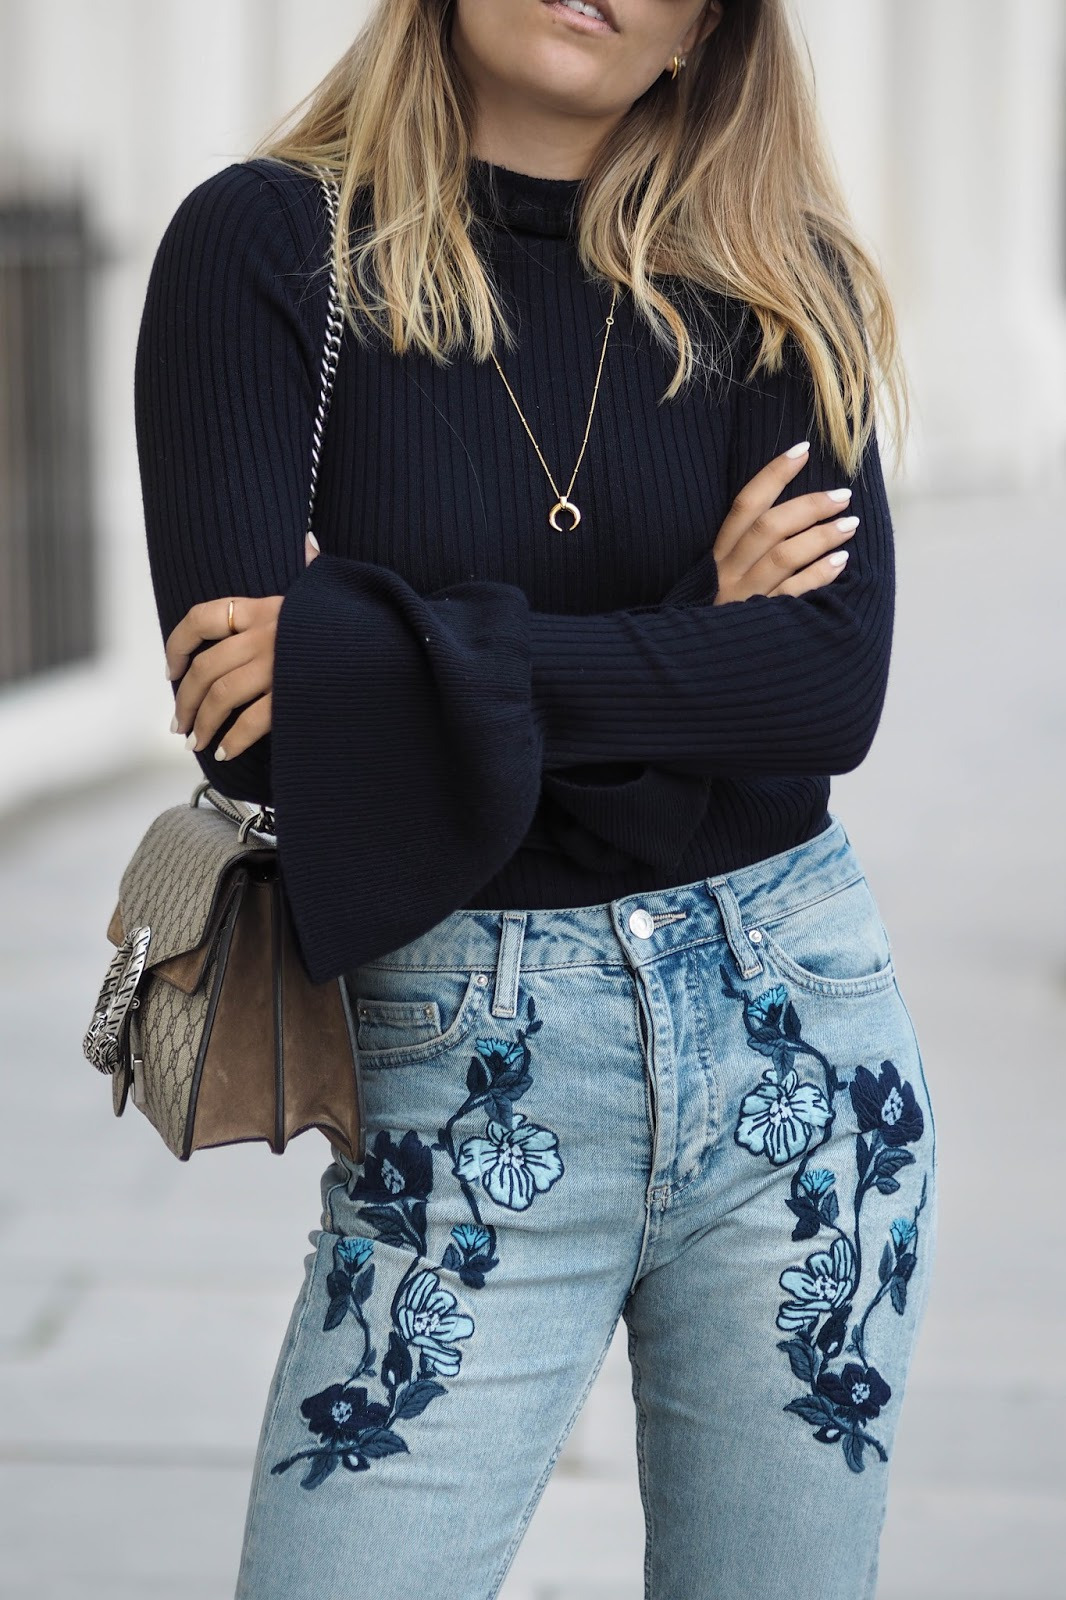 Style Trend: Embroidered Jeans | Kayla Lynn